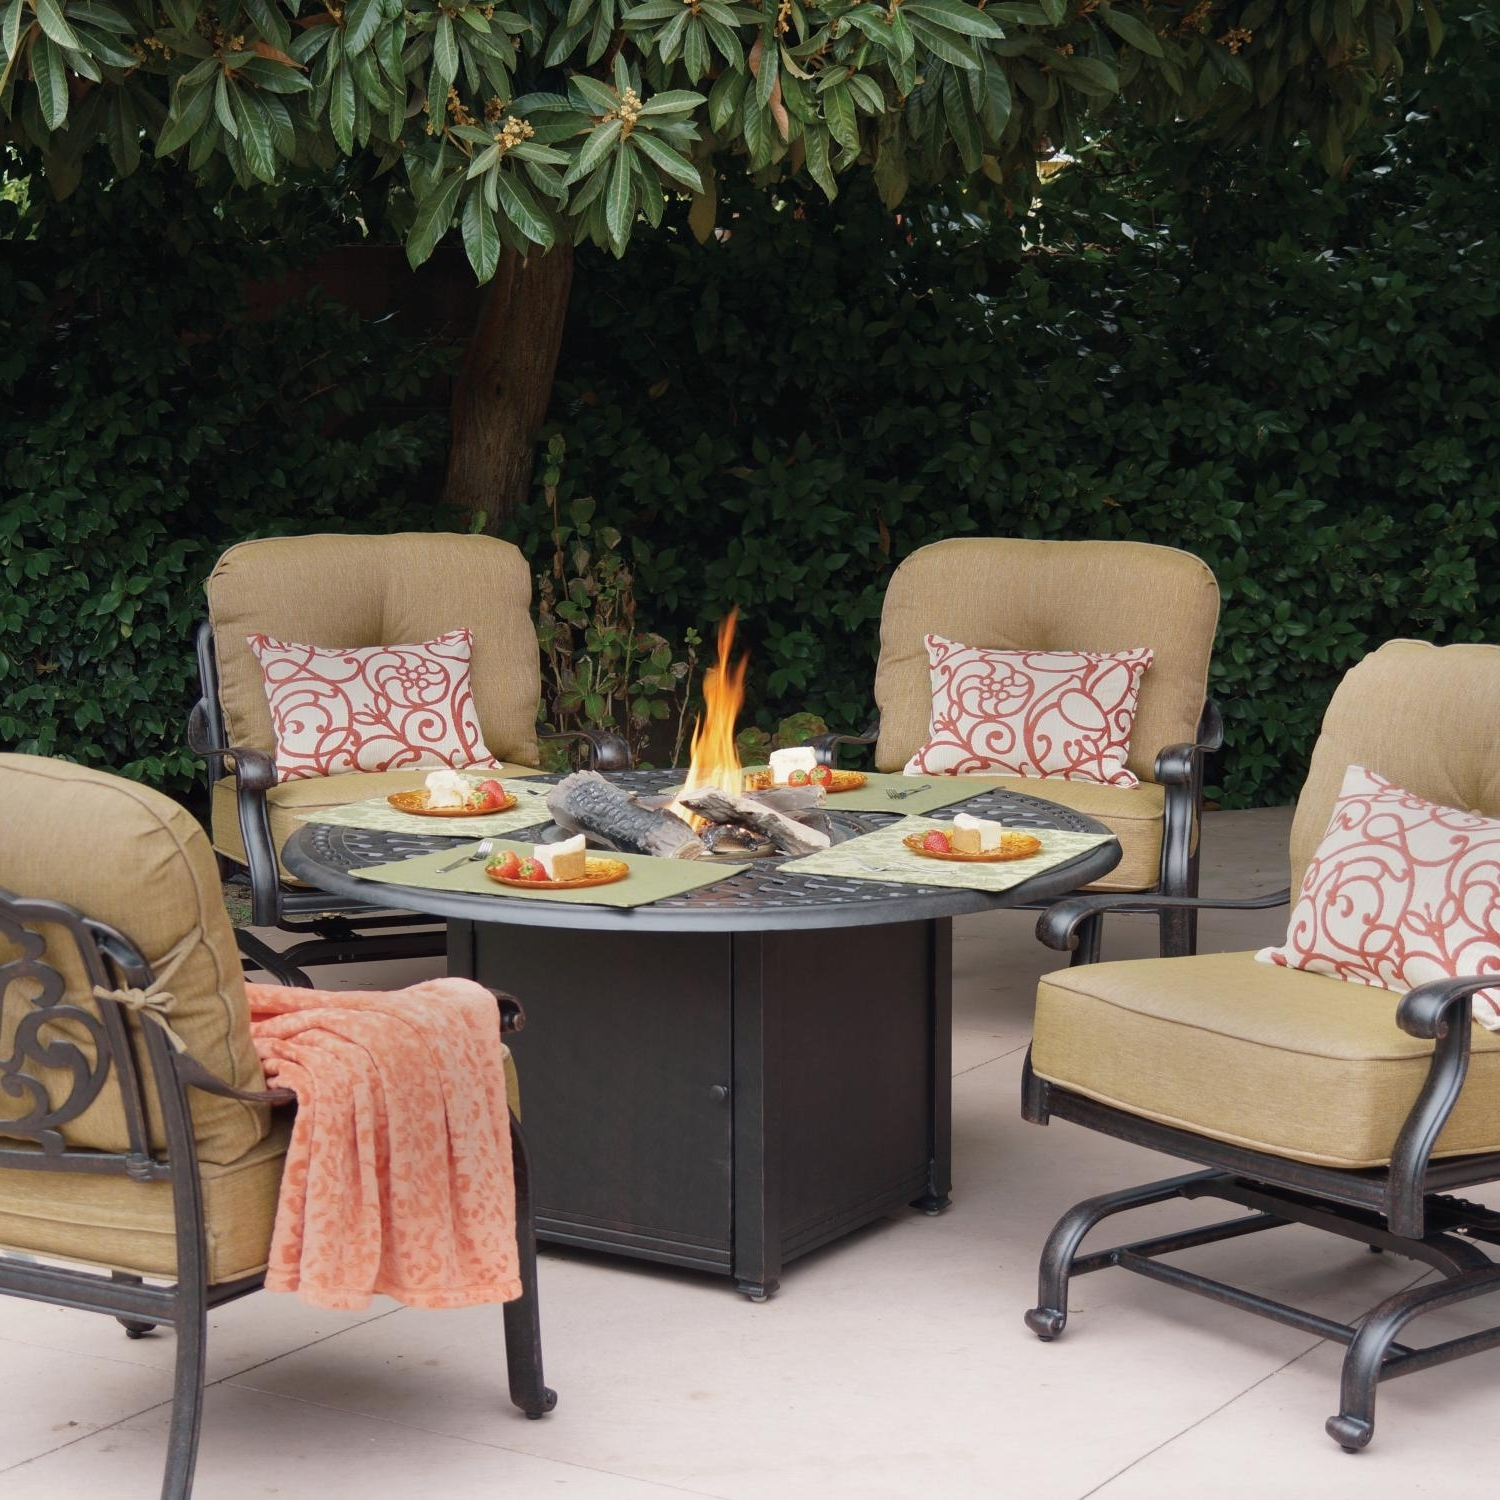 Preferred Patio Conversation Sets With Propane Fire Pit Inside Metal Fire Pit Table Patio Furniture With Propane Fire Pit Table (View 12 of 15)